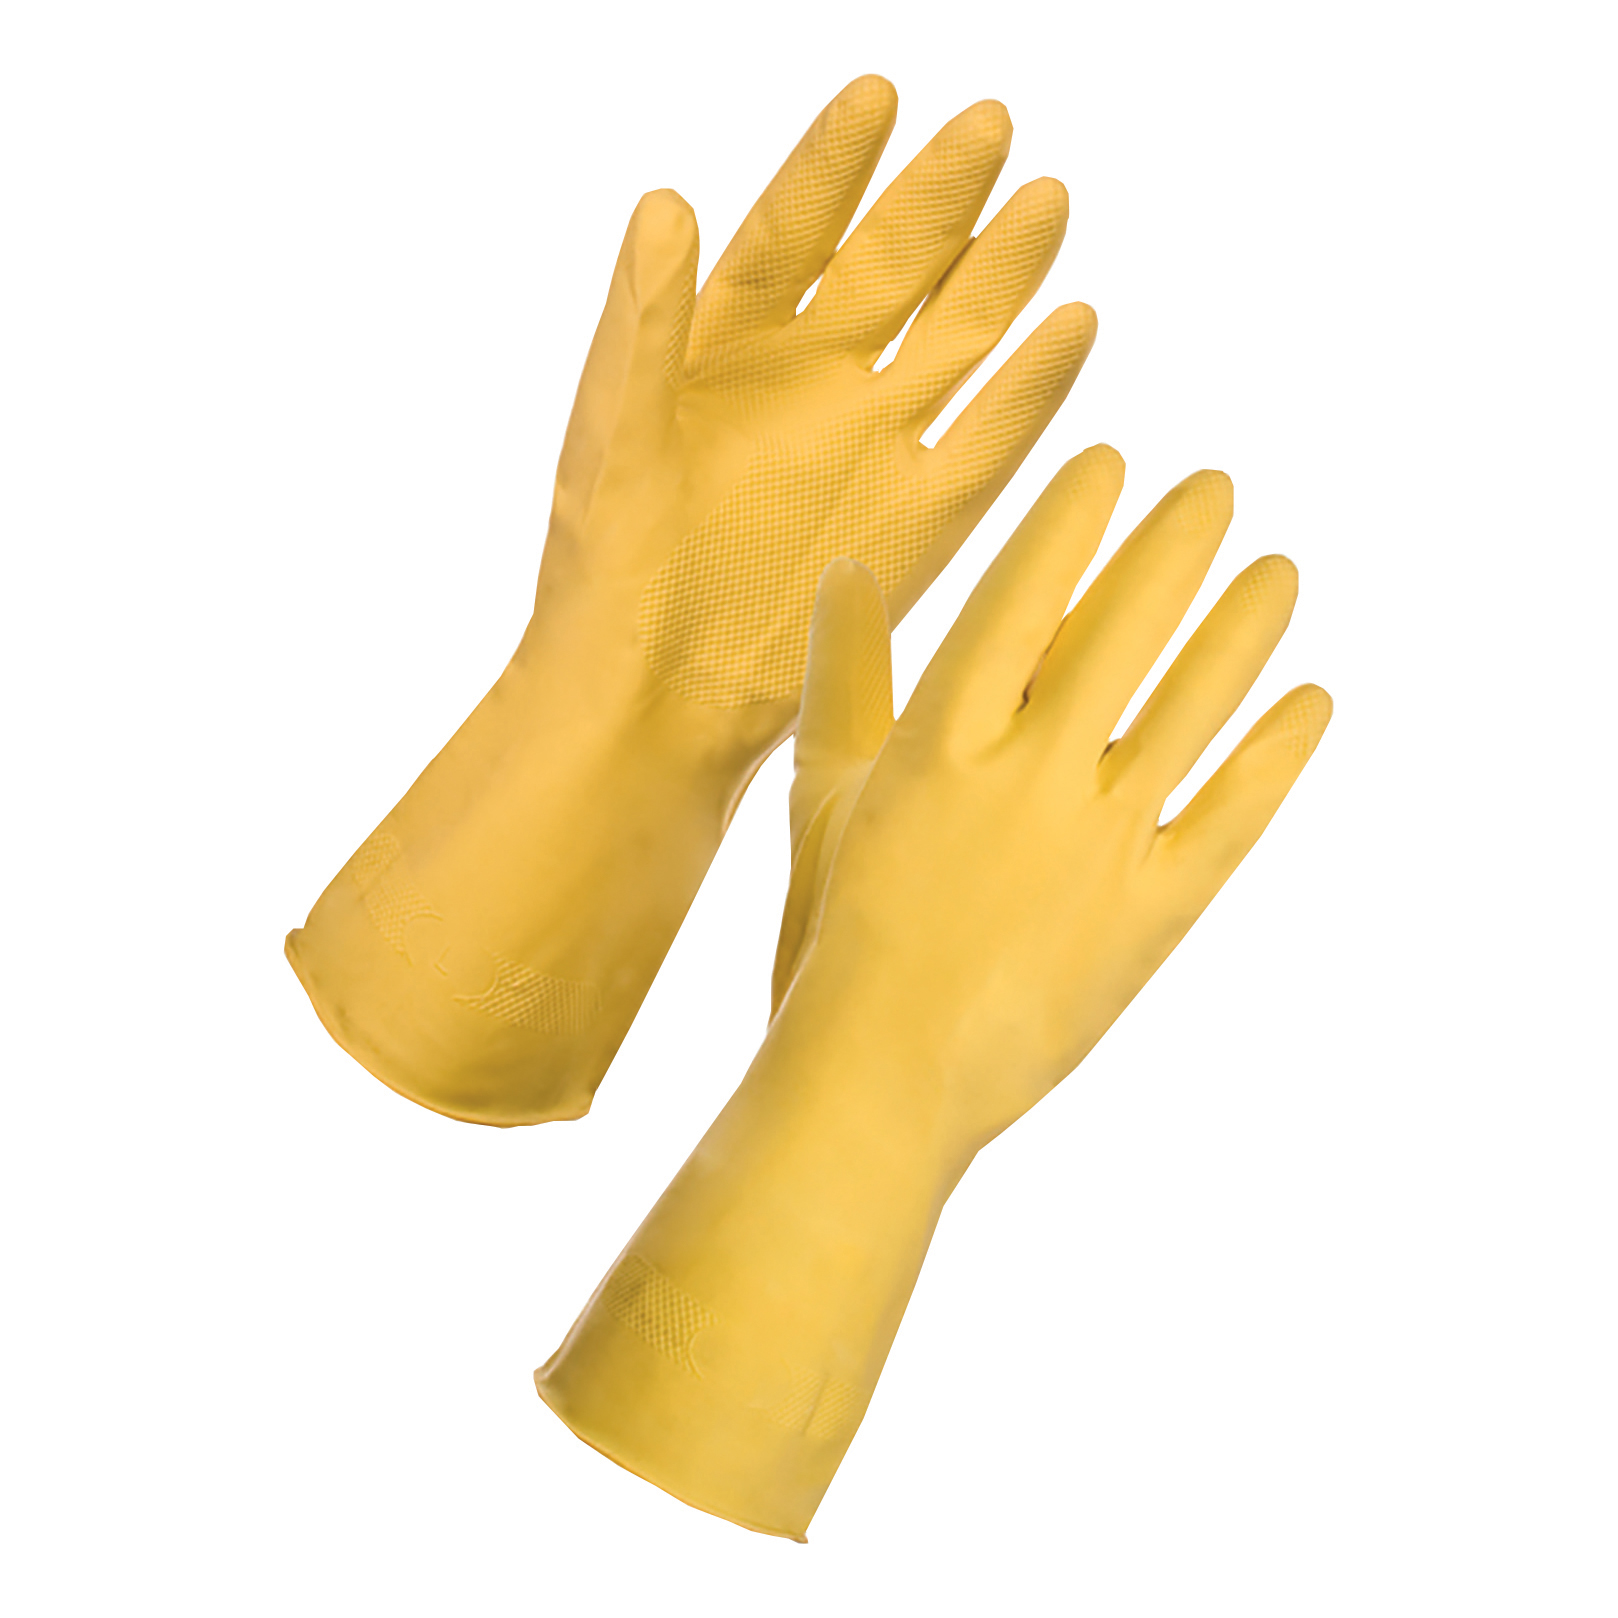 Rubber Gloves Medium Yellow Pair